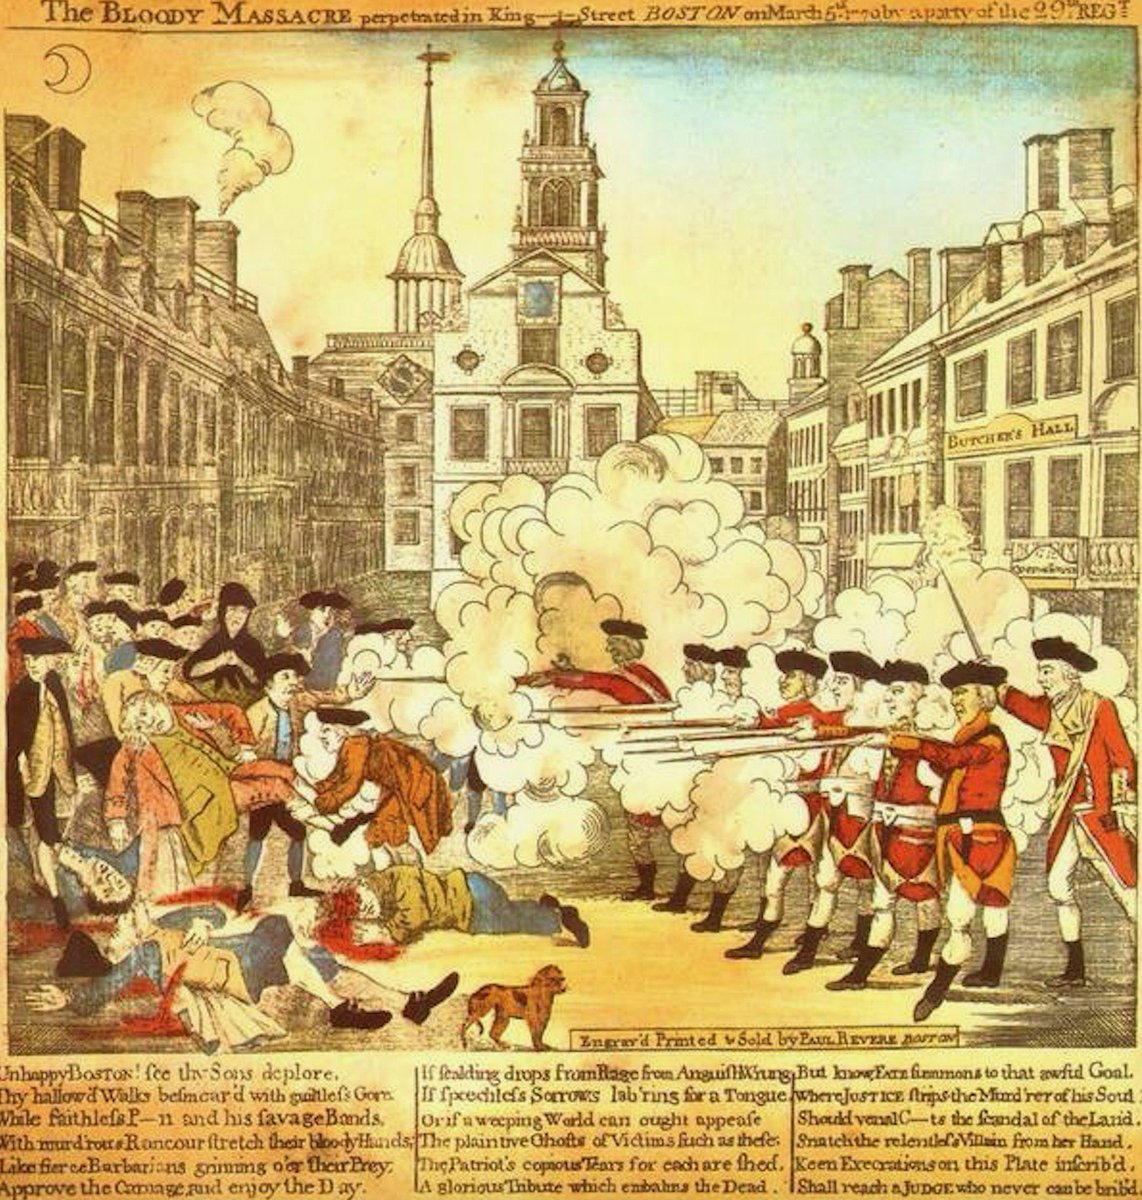 Boston Massacre was today 1770—here depicted by the impassioned Paul Revere: https://t.co/qFmepNnleN